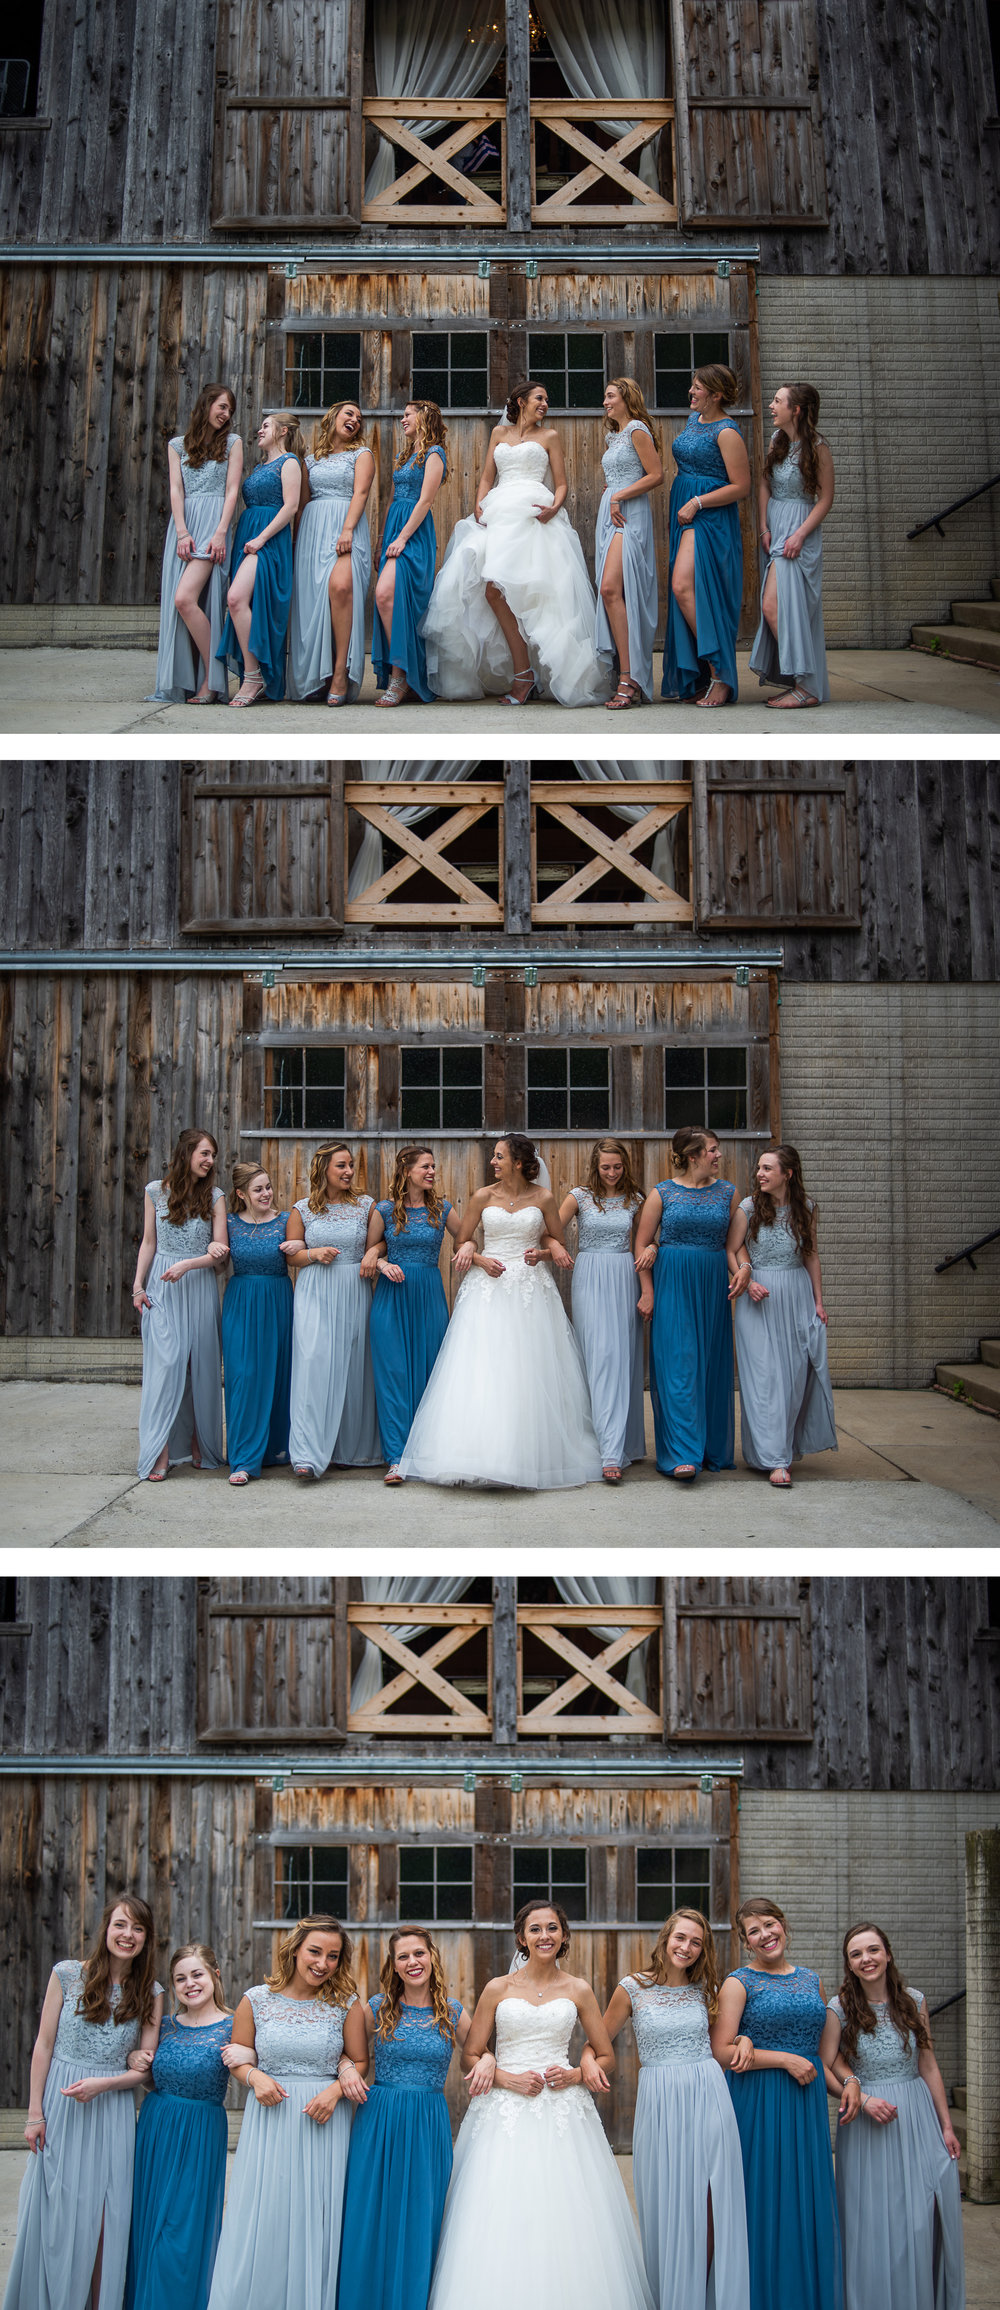 Brett Loves Elle Photography, Columbus Wedding Photographers, Ohio Wedding Photography, Wedding Day Bridesmaid Portrait